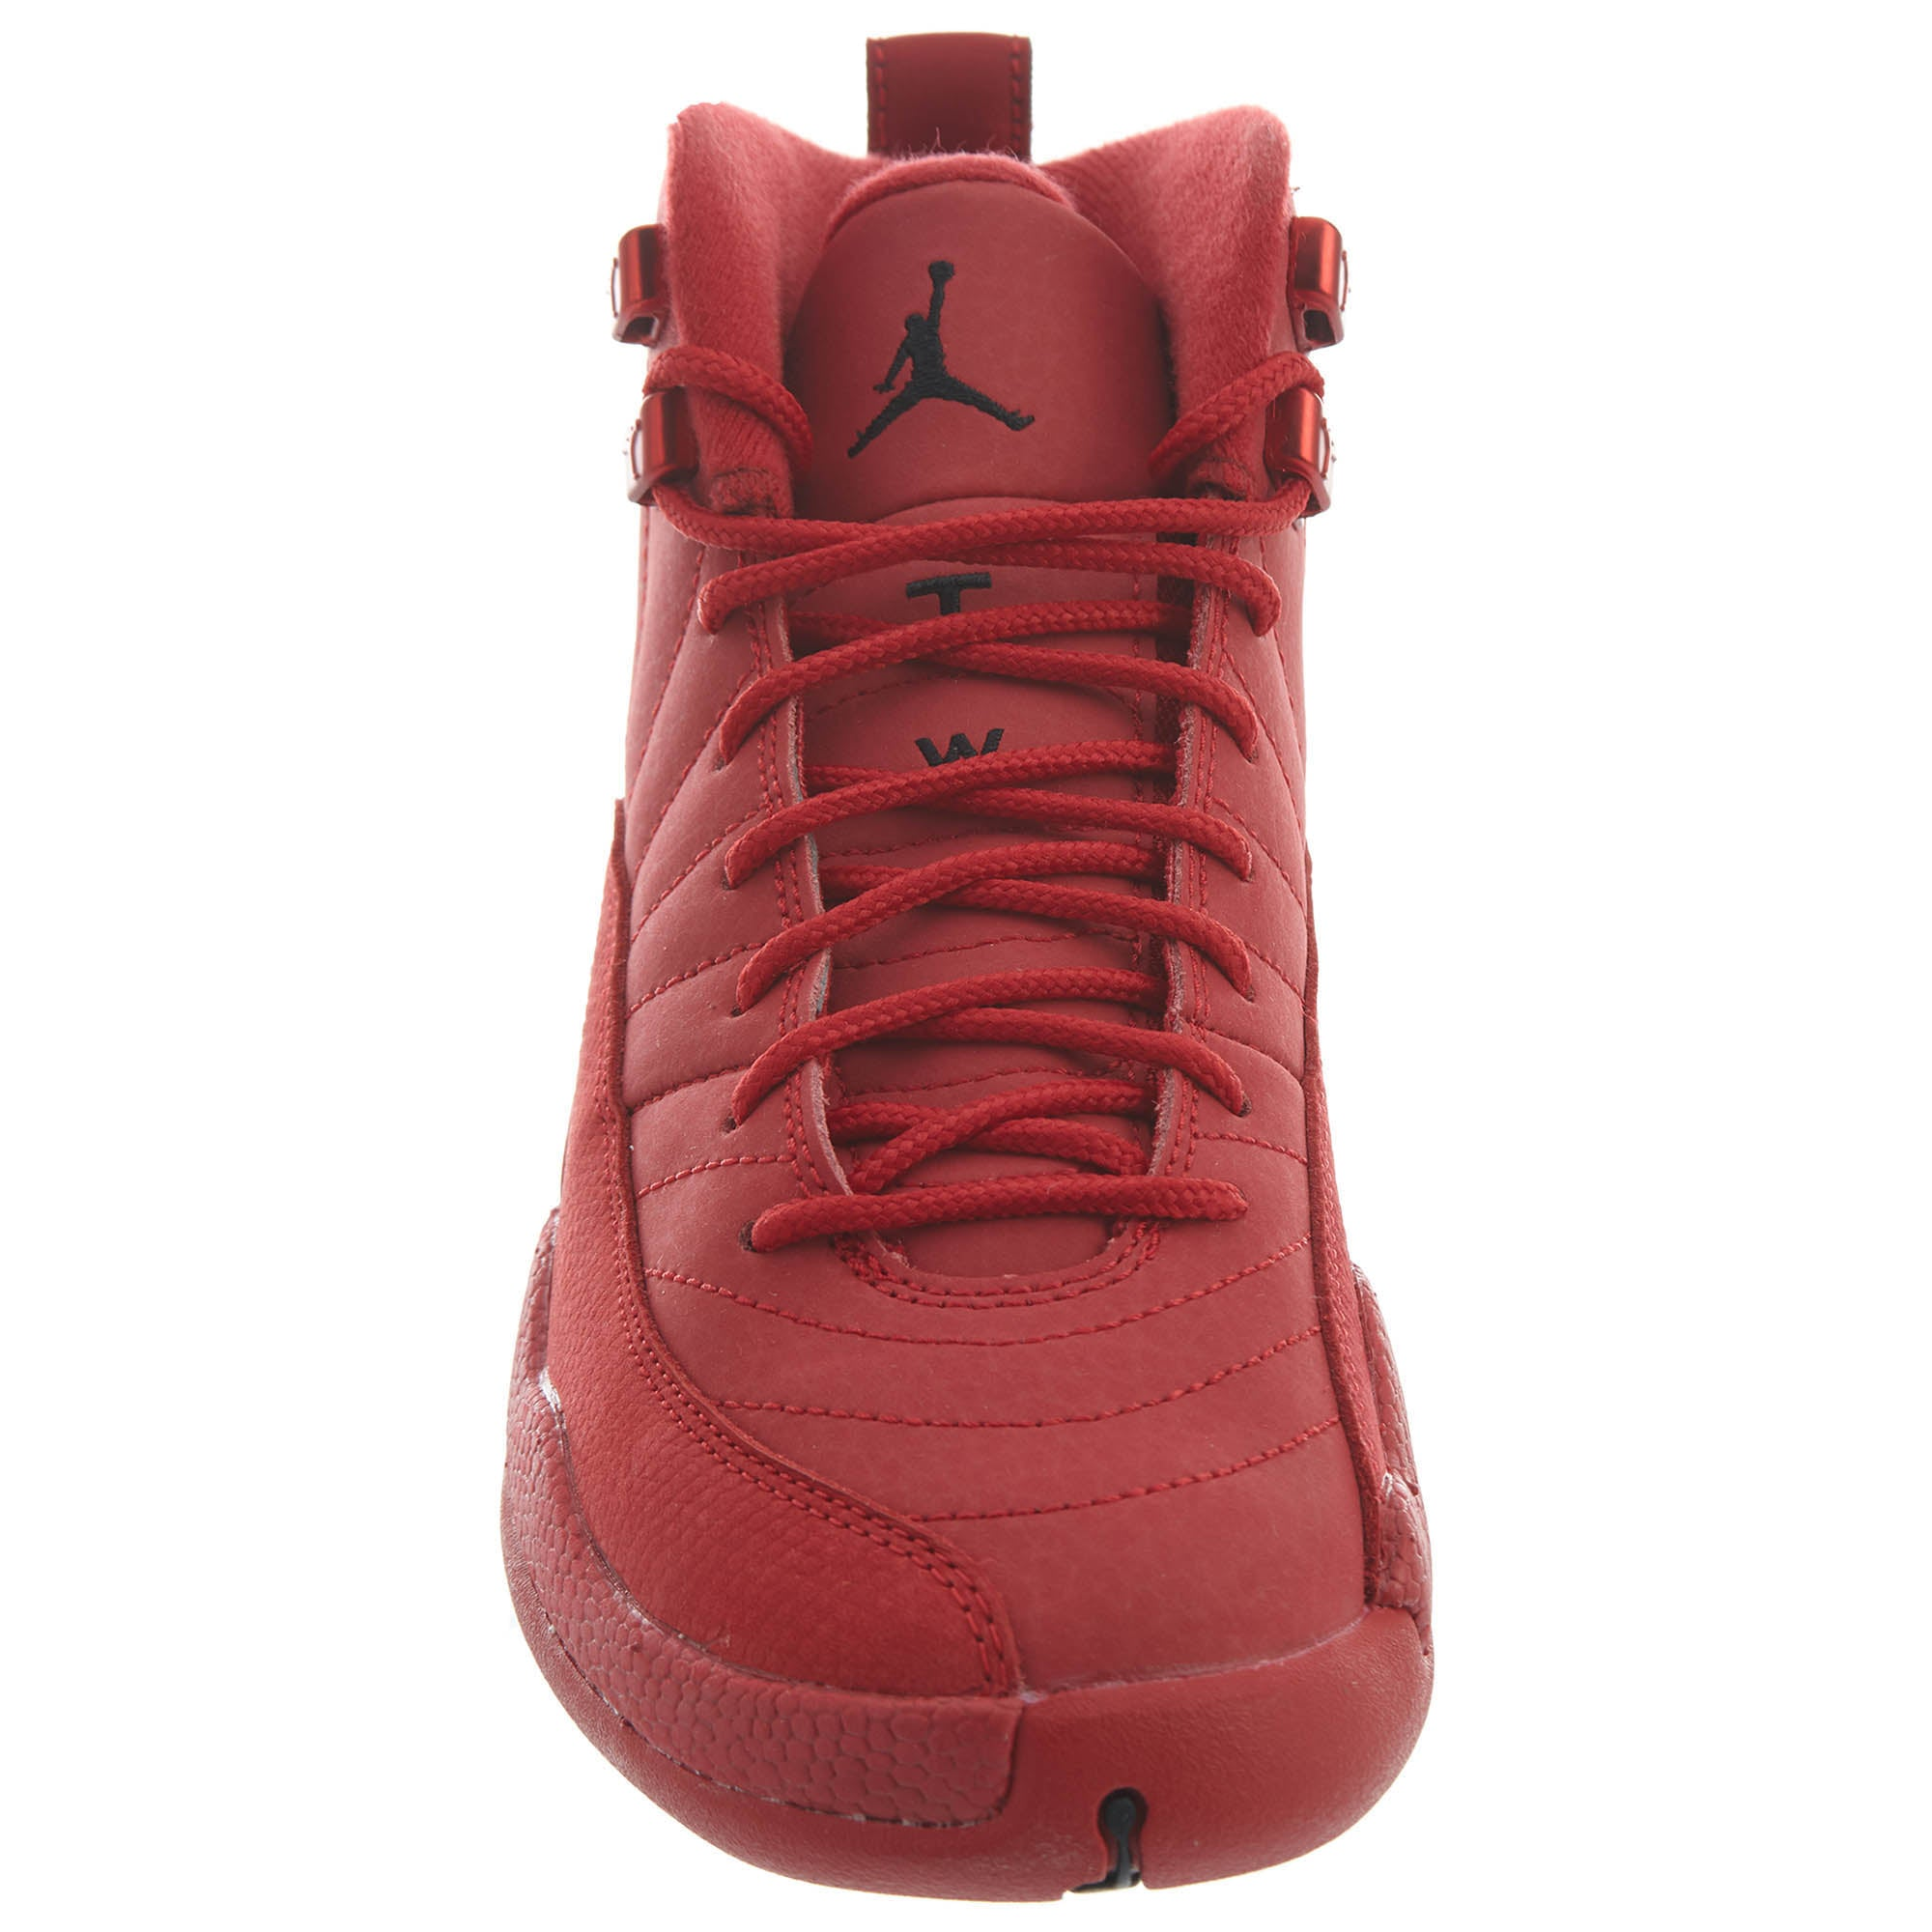 best loved 29543 dc9aa Jordan Jordan 12 Retro Gym Red (2018) Grade School Big Kids Style   15